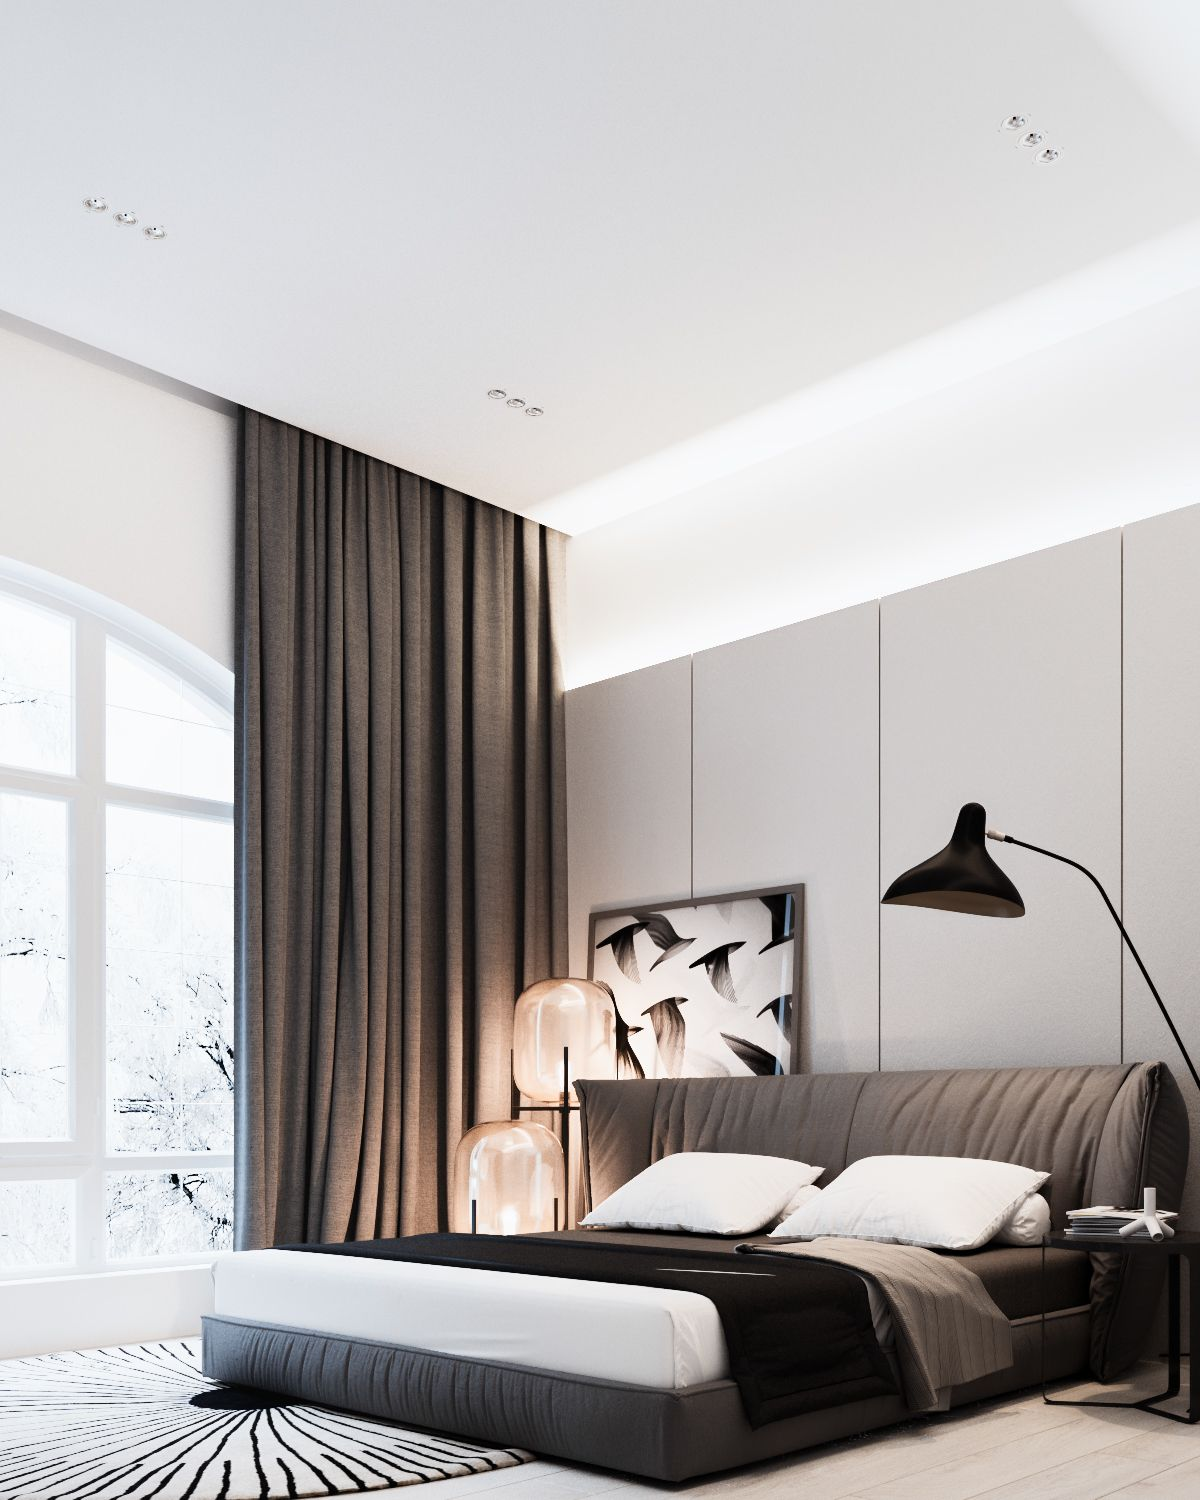 Modern bedroom interior style